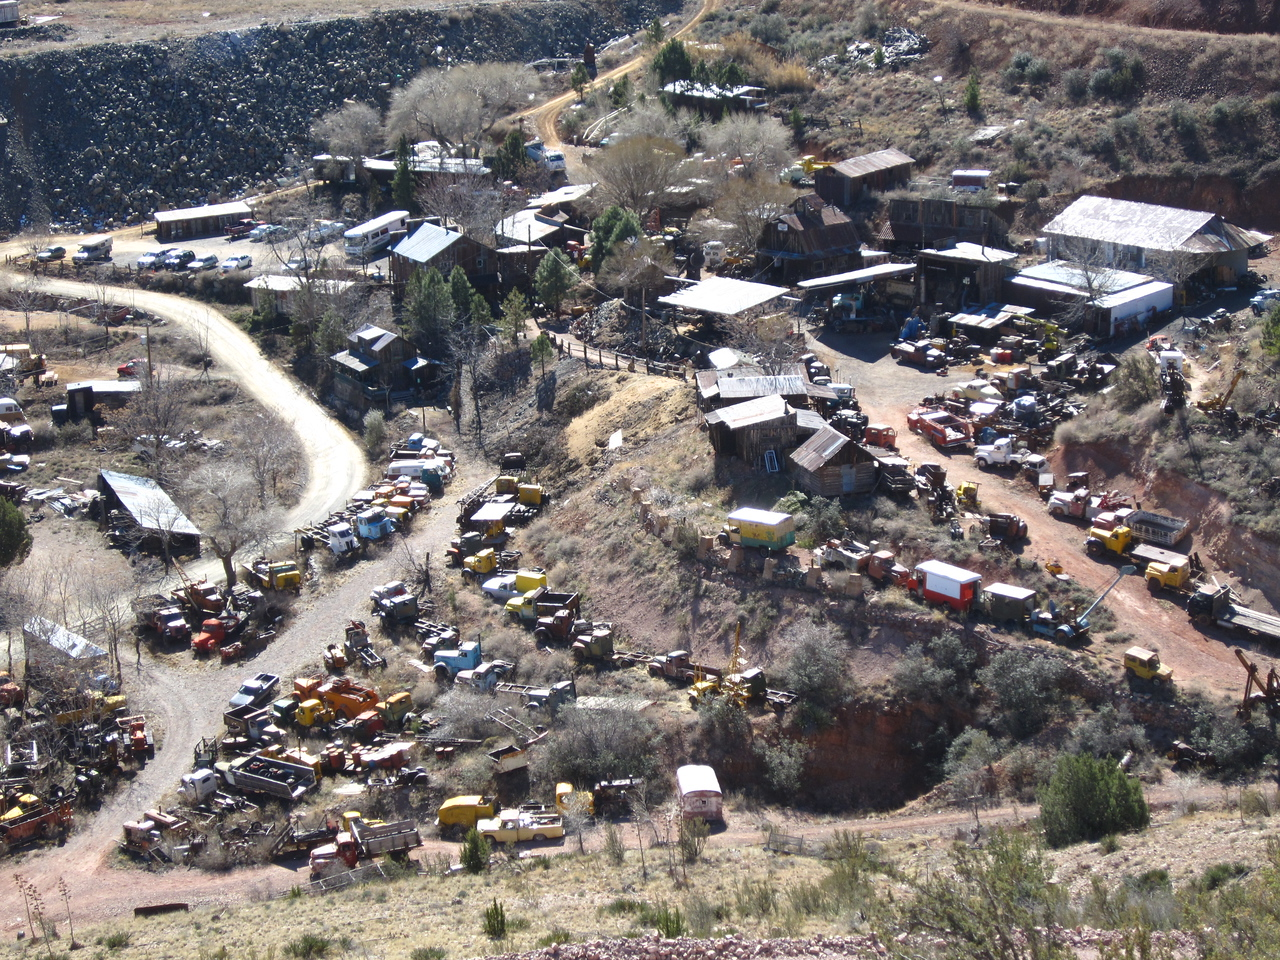 A mining ghost town just outside of Jerome AZ.